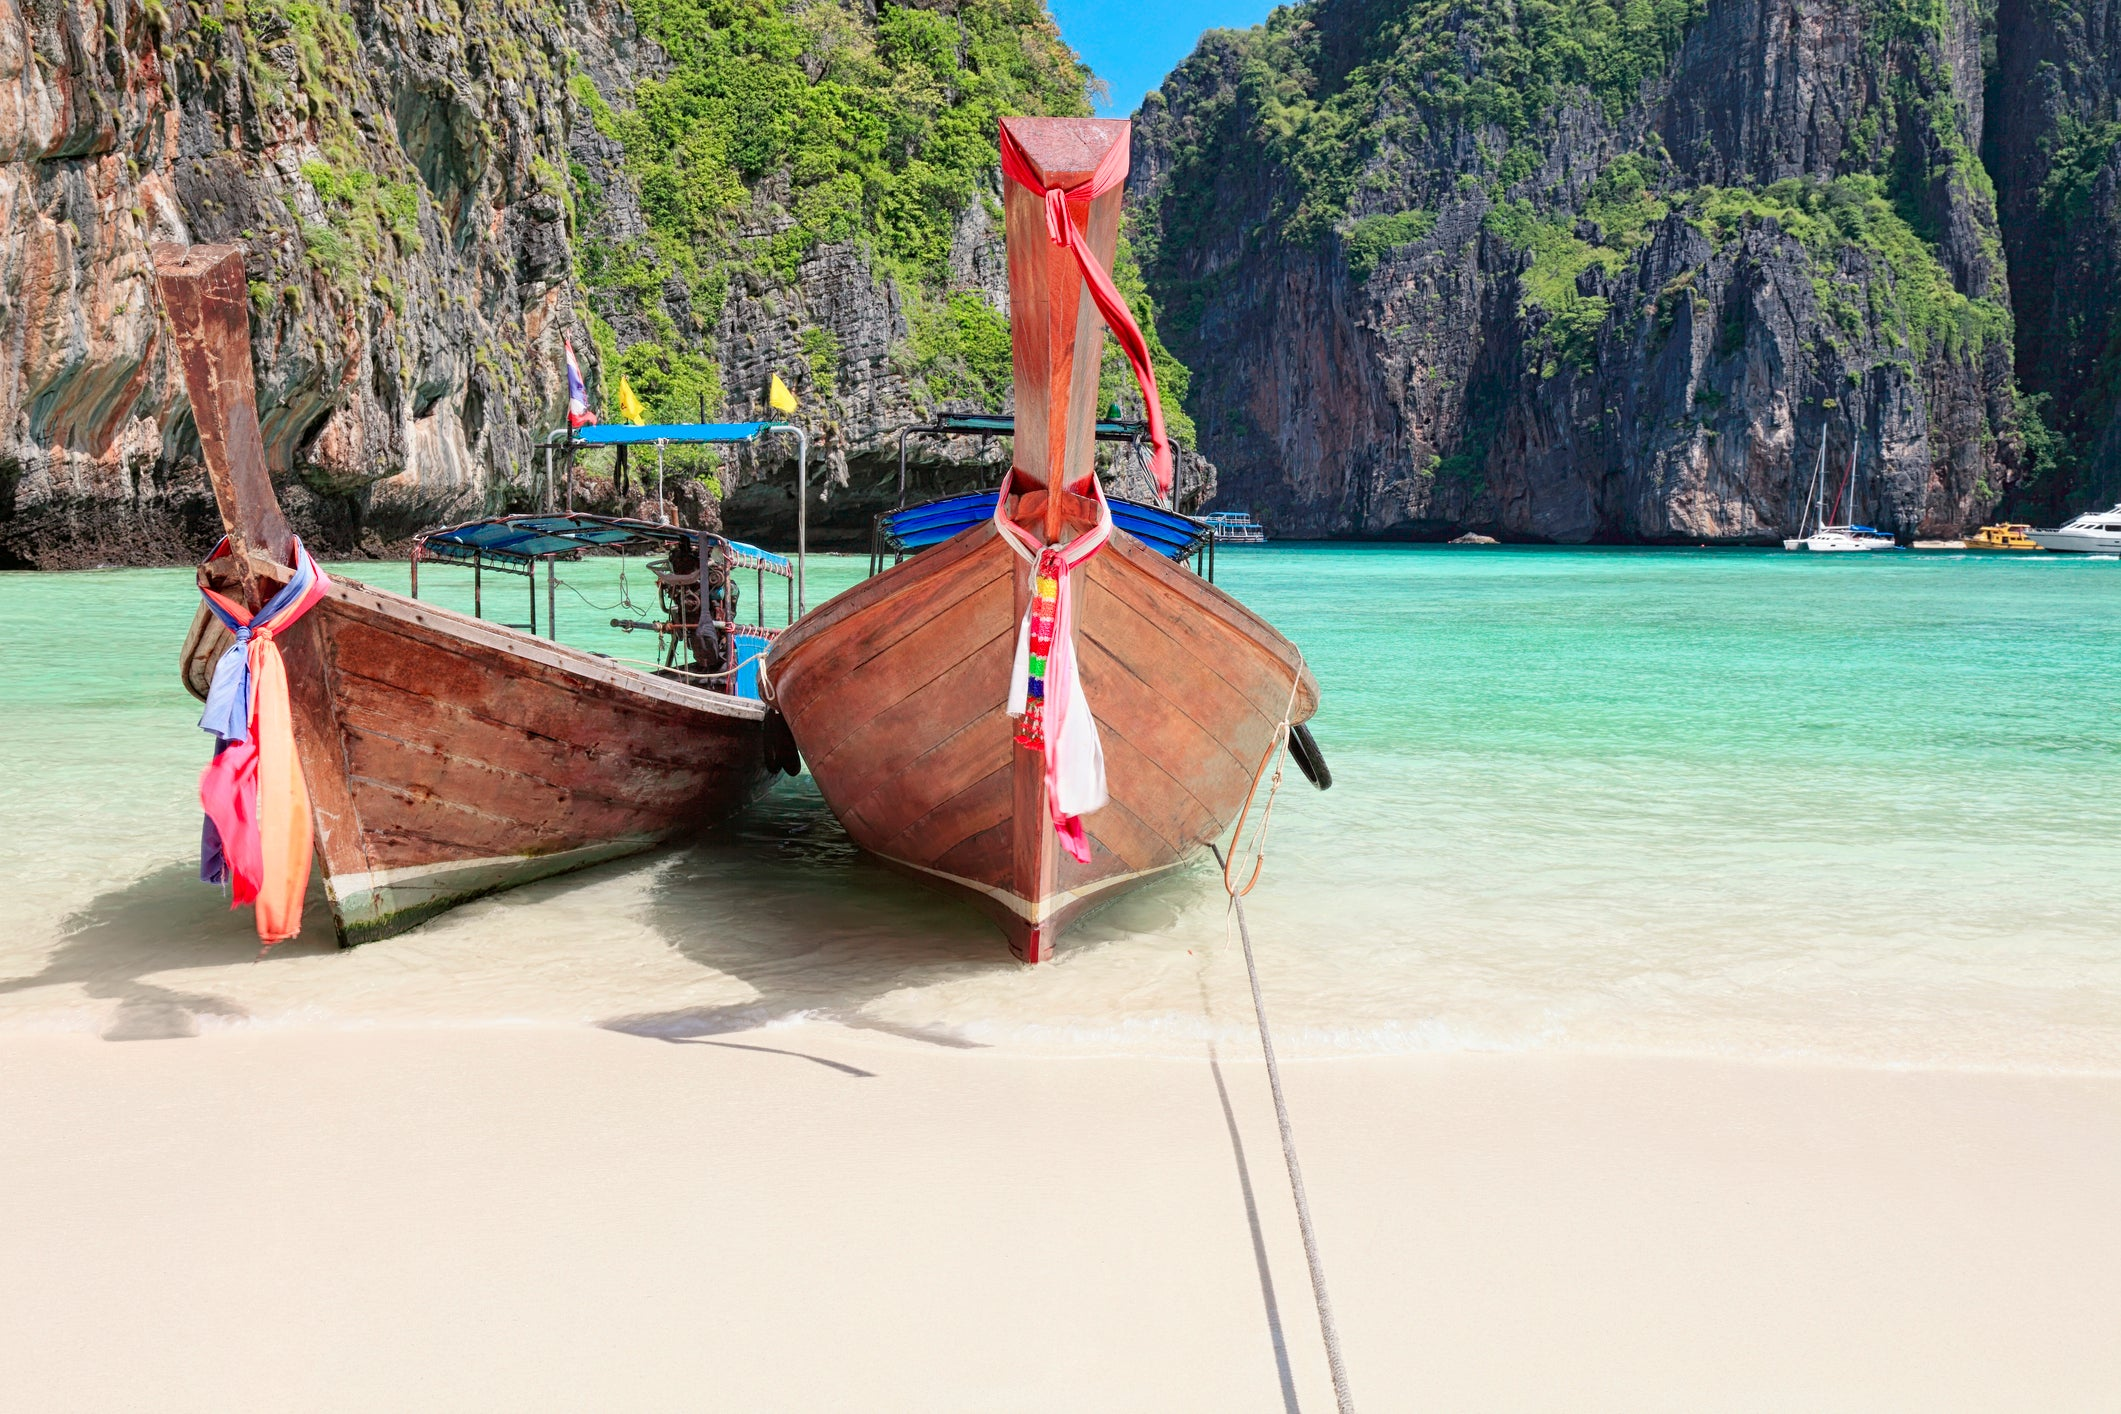 Thailand's famous Maya Bay from film The Beach to close due to